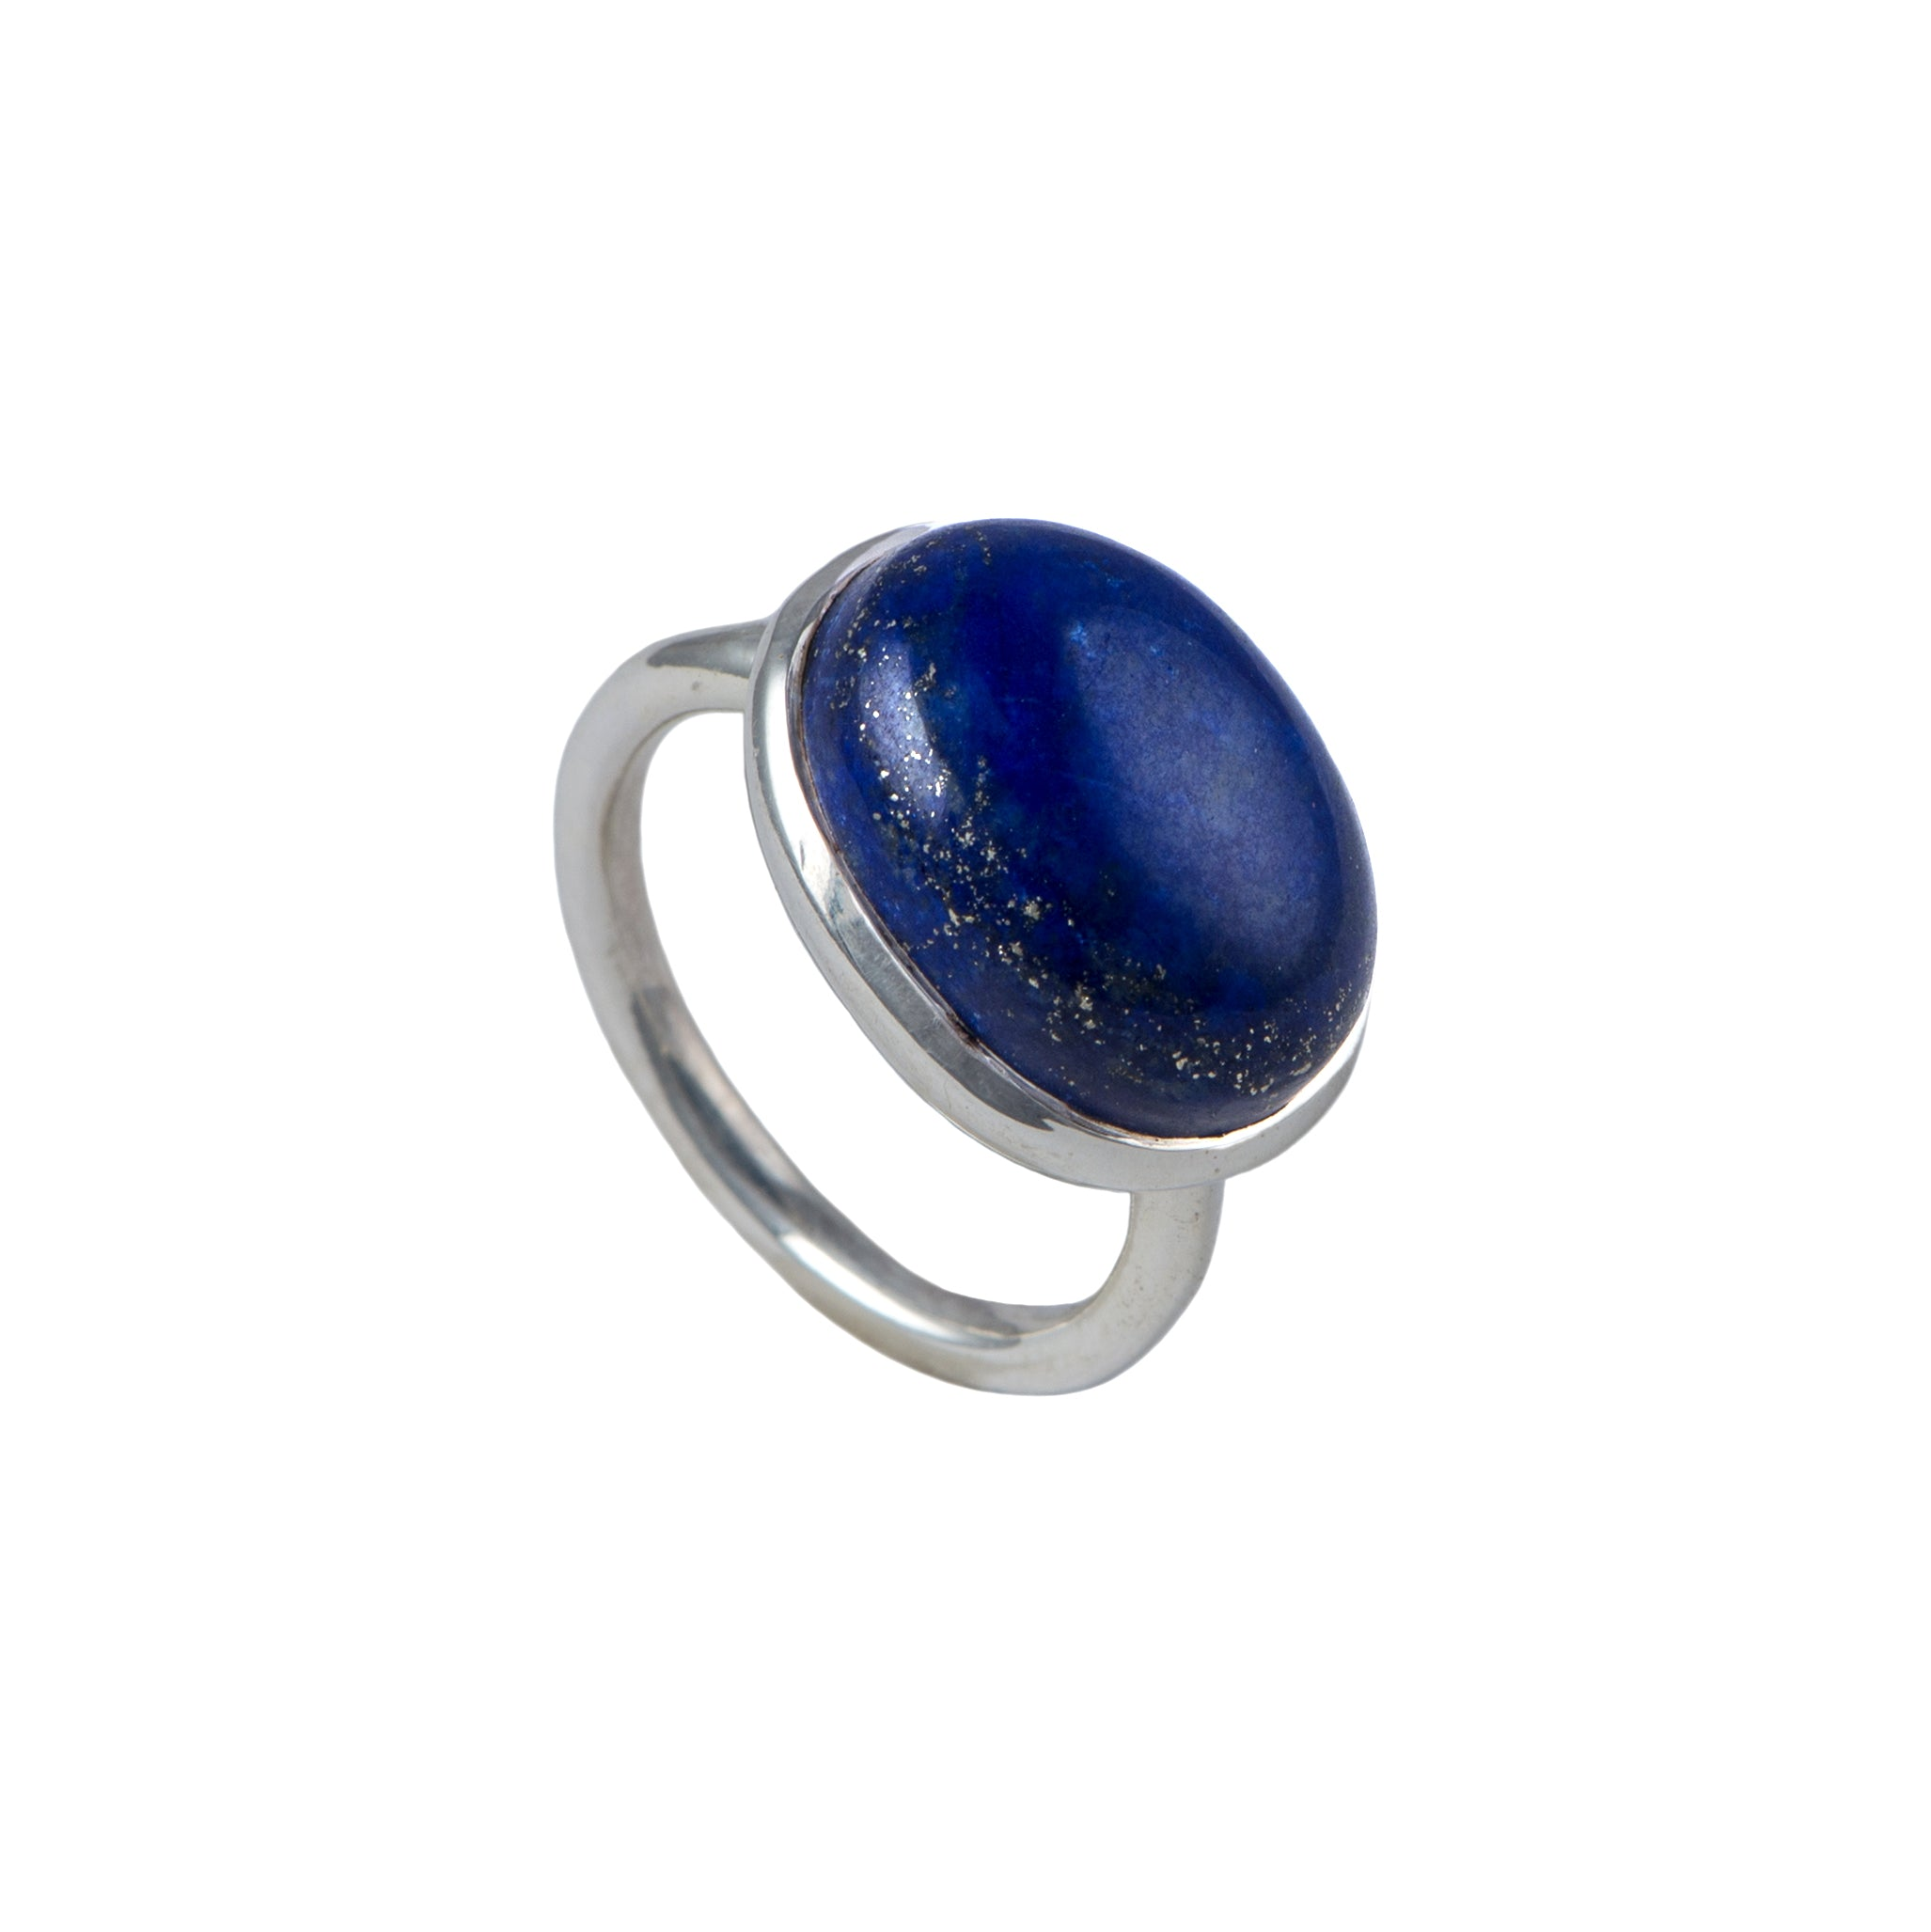 Cabochon Oval Cut Natural Gemstone Sterling Silver Ring - Lapis Lazuli